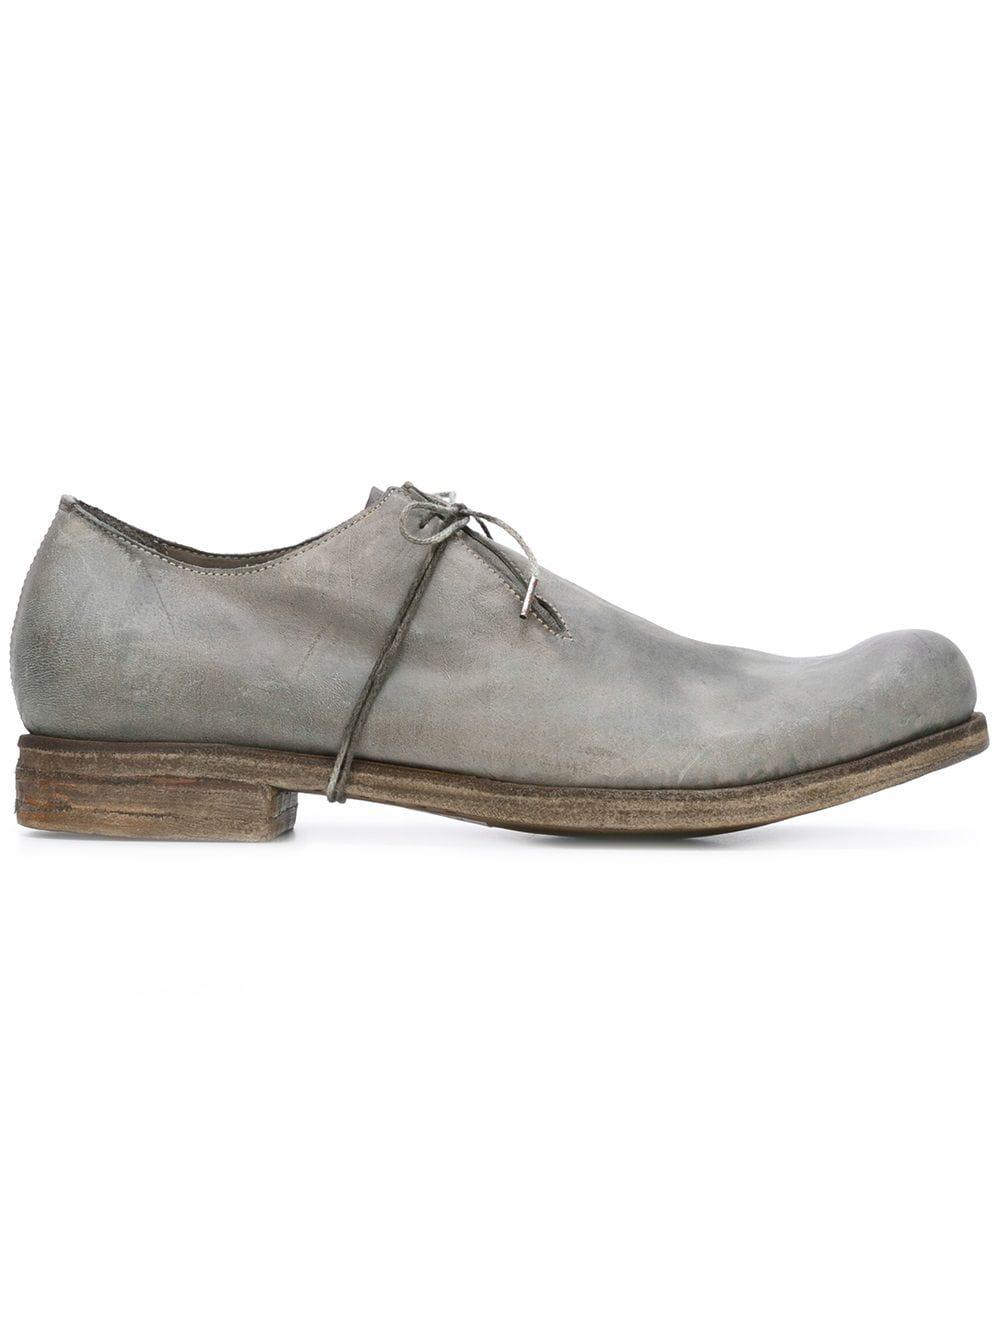 A Diciannoveventitre Leather Round Toe Derby Shoes in Grey (Grey) for Men